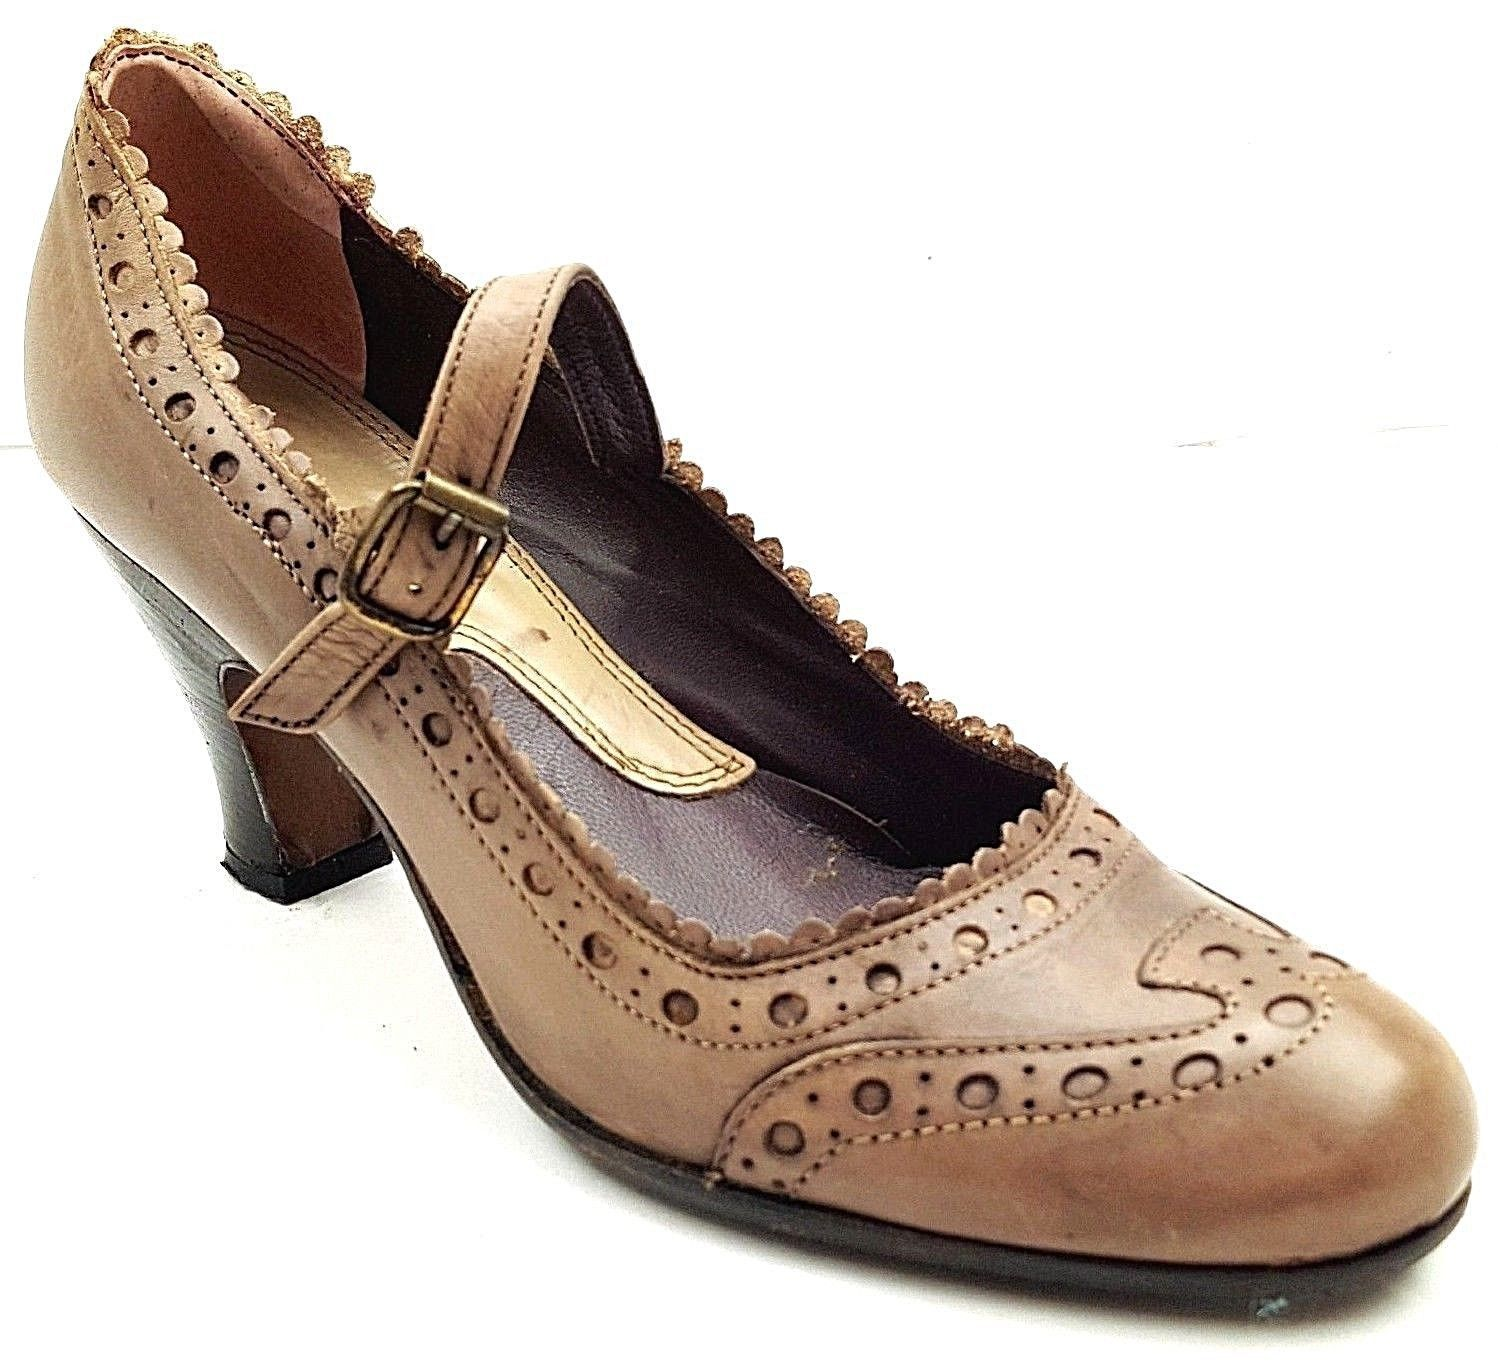 Donna Italy GIXUS Made in Italy Donna Pumps Mary Jane Strap Taupe Gris Pelle 34484e